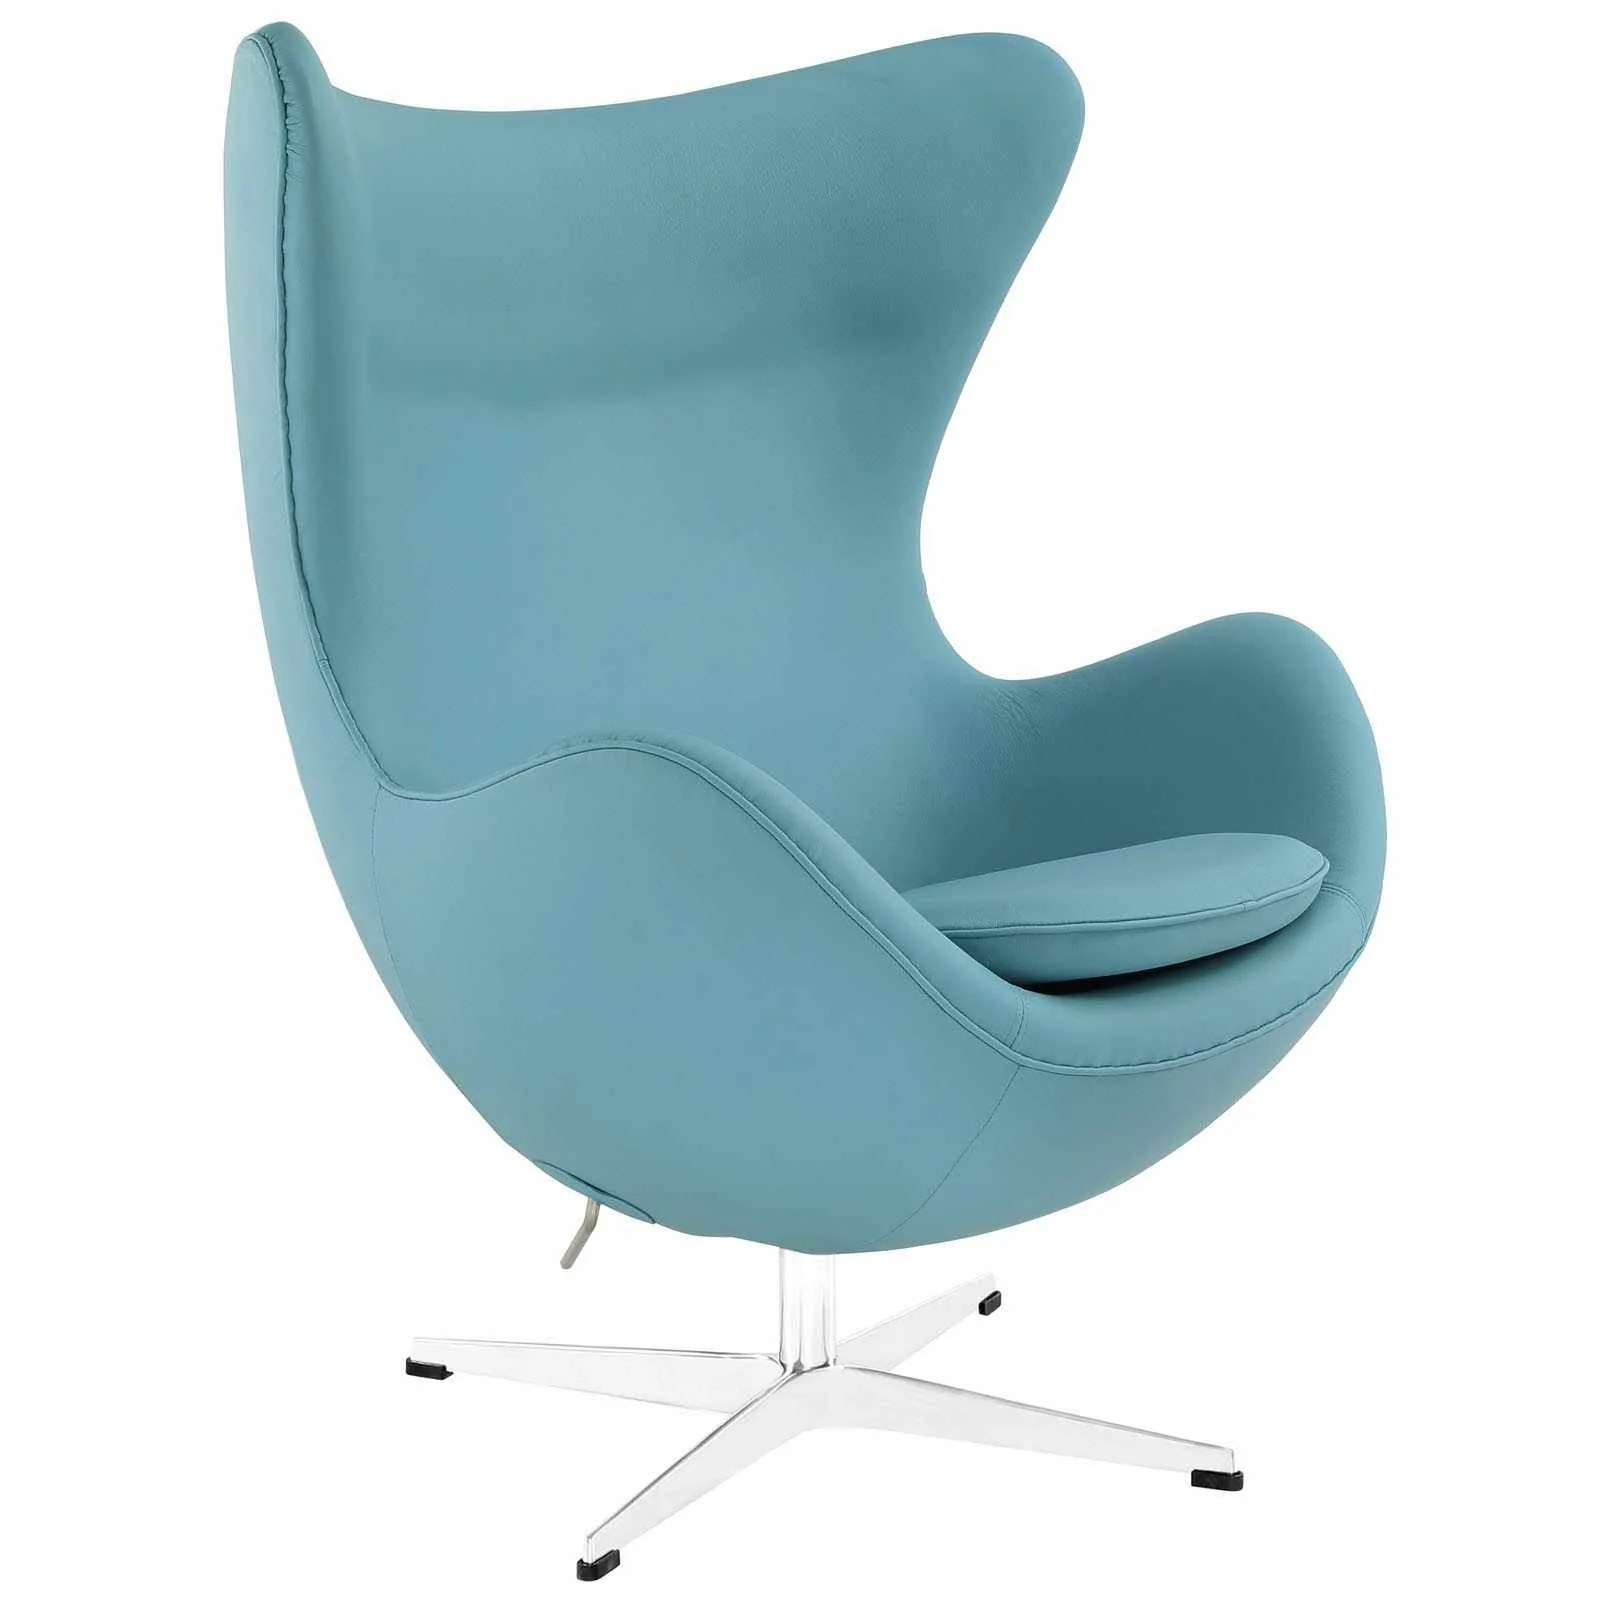 Baby Egg Chair Jacobsen Egg Chair And Ottoman Replica Emfurn